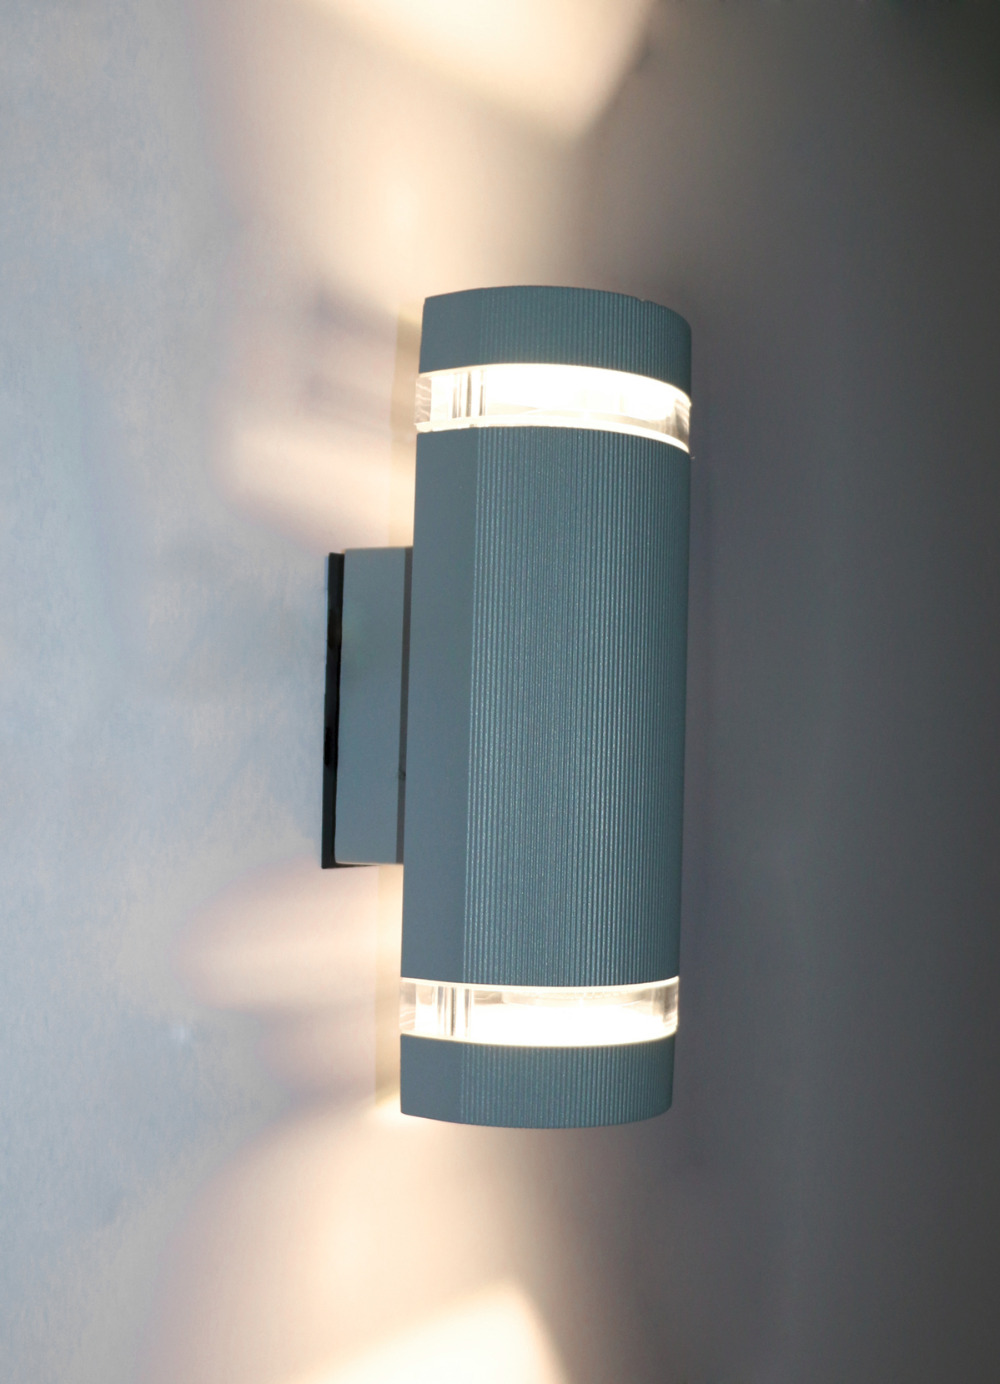 Wall Sconce Lamp Kit : Aliexpress.com : Buy 14W Semi Cylinder Up/Down Indoor/Outdoor Exterior Garden Wall Light Sconce ...